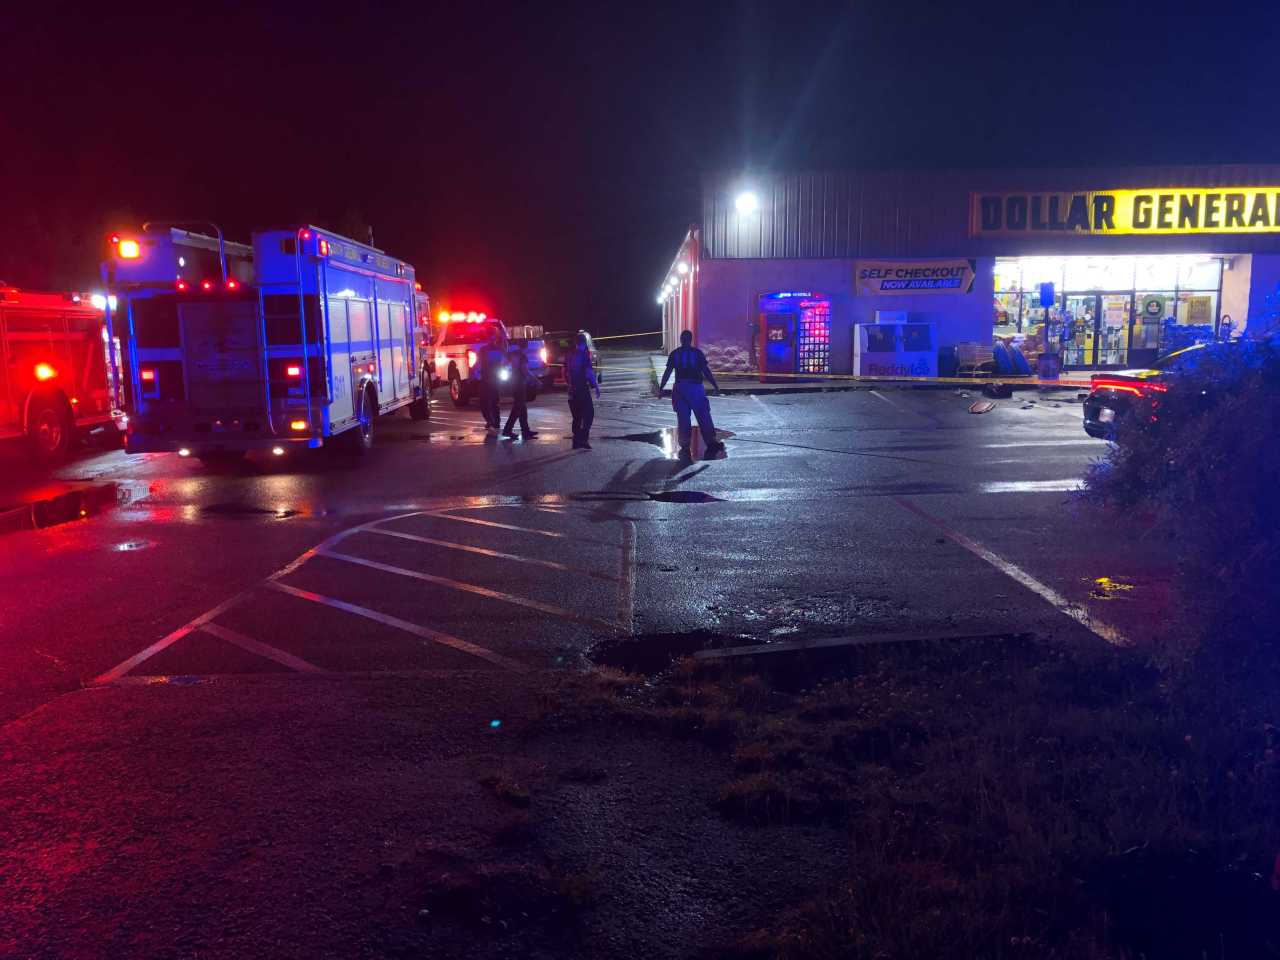 Gunshot victim reported at Dollar General in Greenville Co.